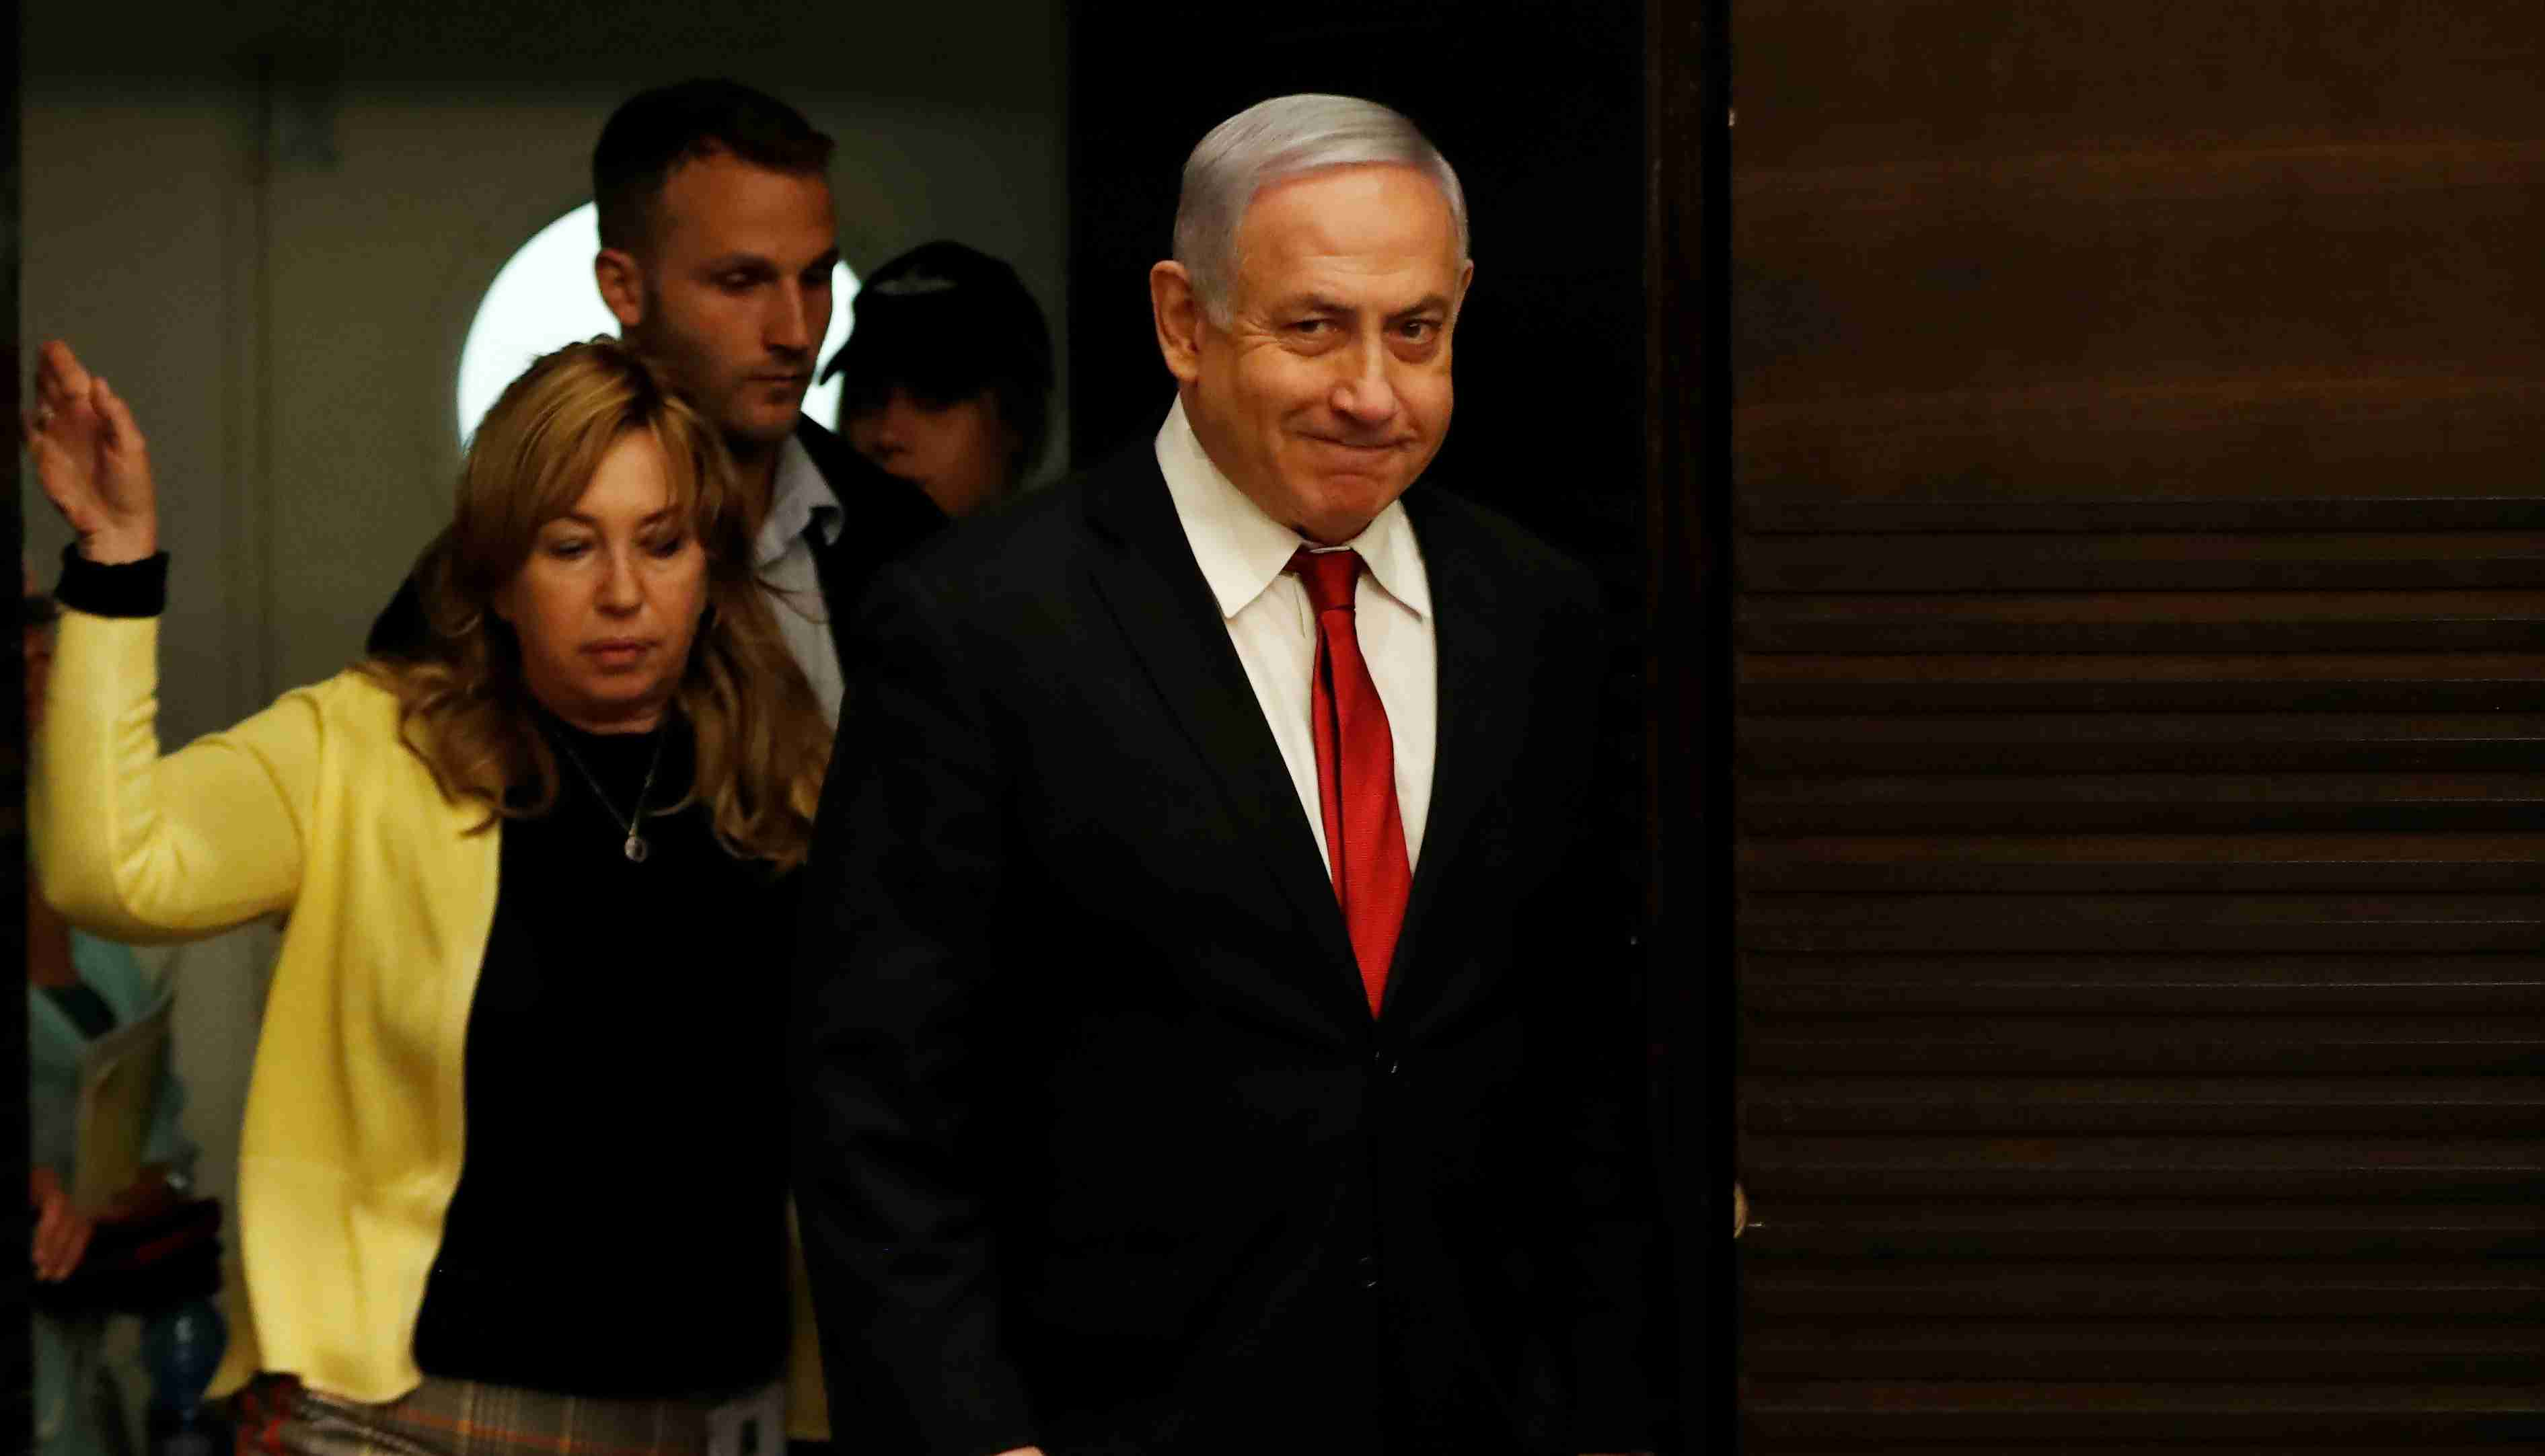 Israeli Prime Minister Benjamin Netanyahu arrives to deliver a statement during a news conference in Jerusalem September 18, 2019. REUTERS/Ronen Zvulun - RC164DDDFFF0